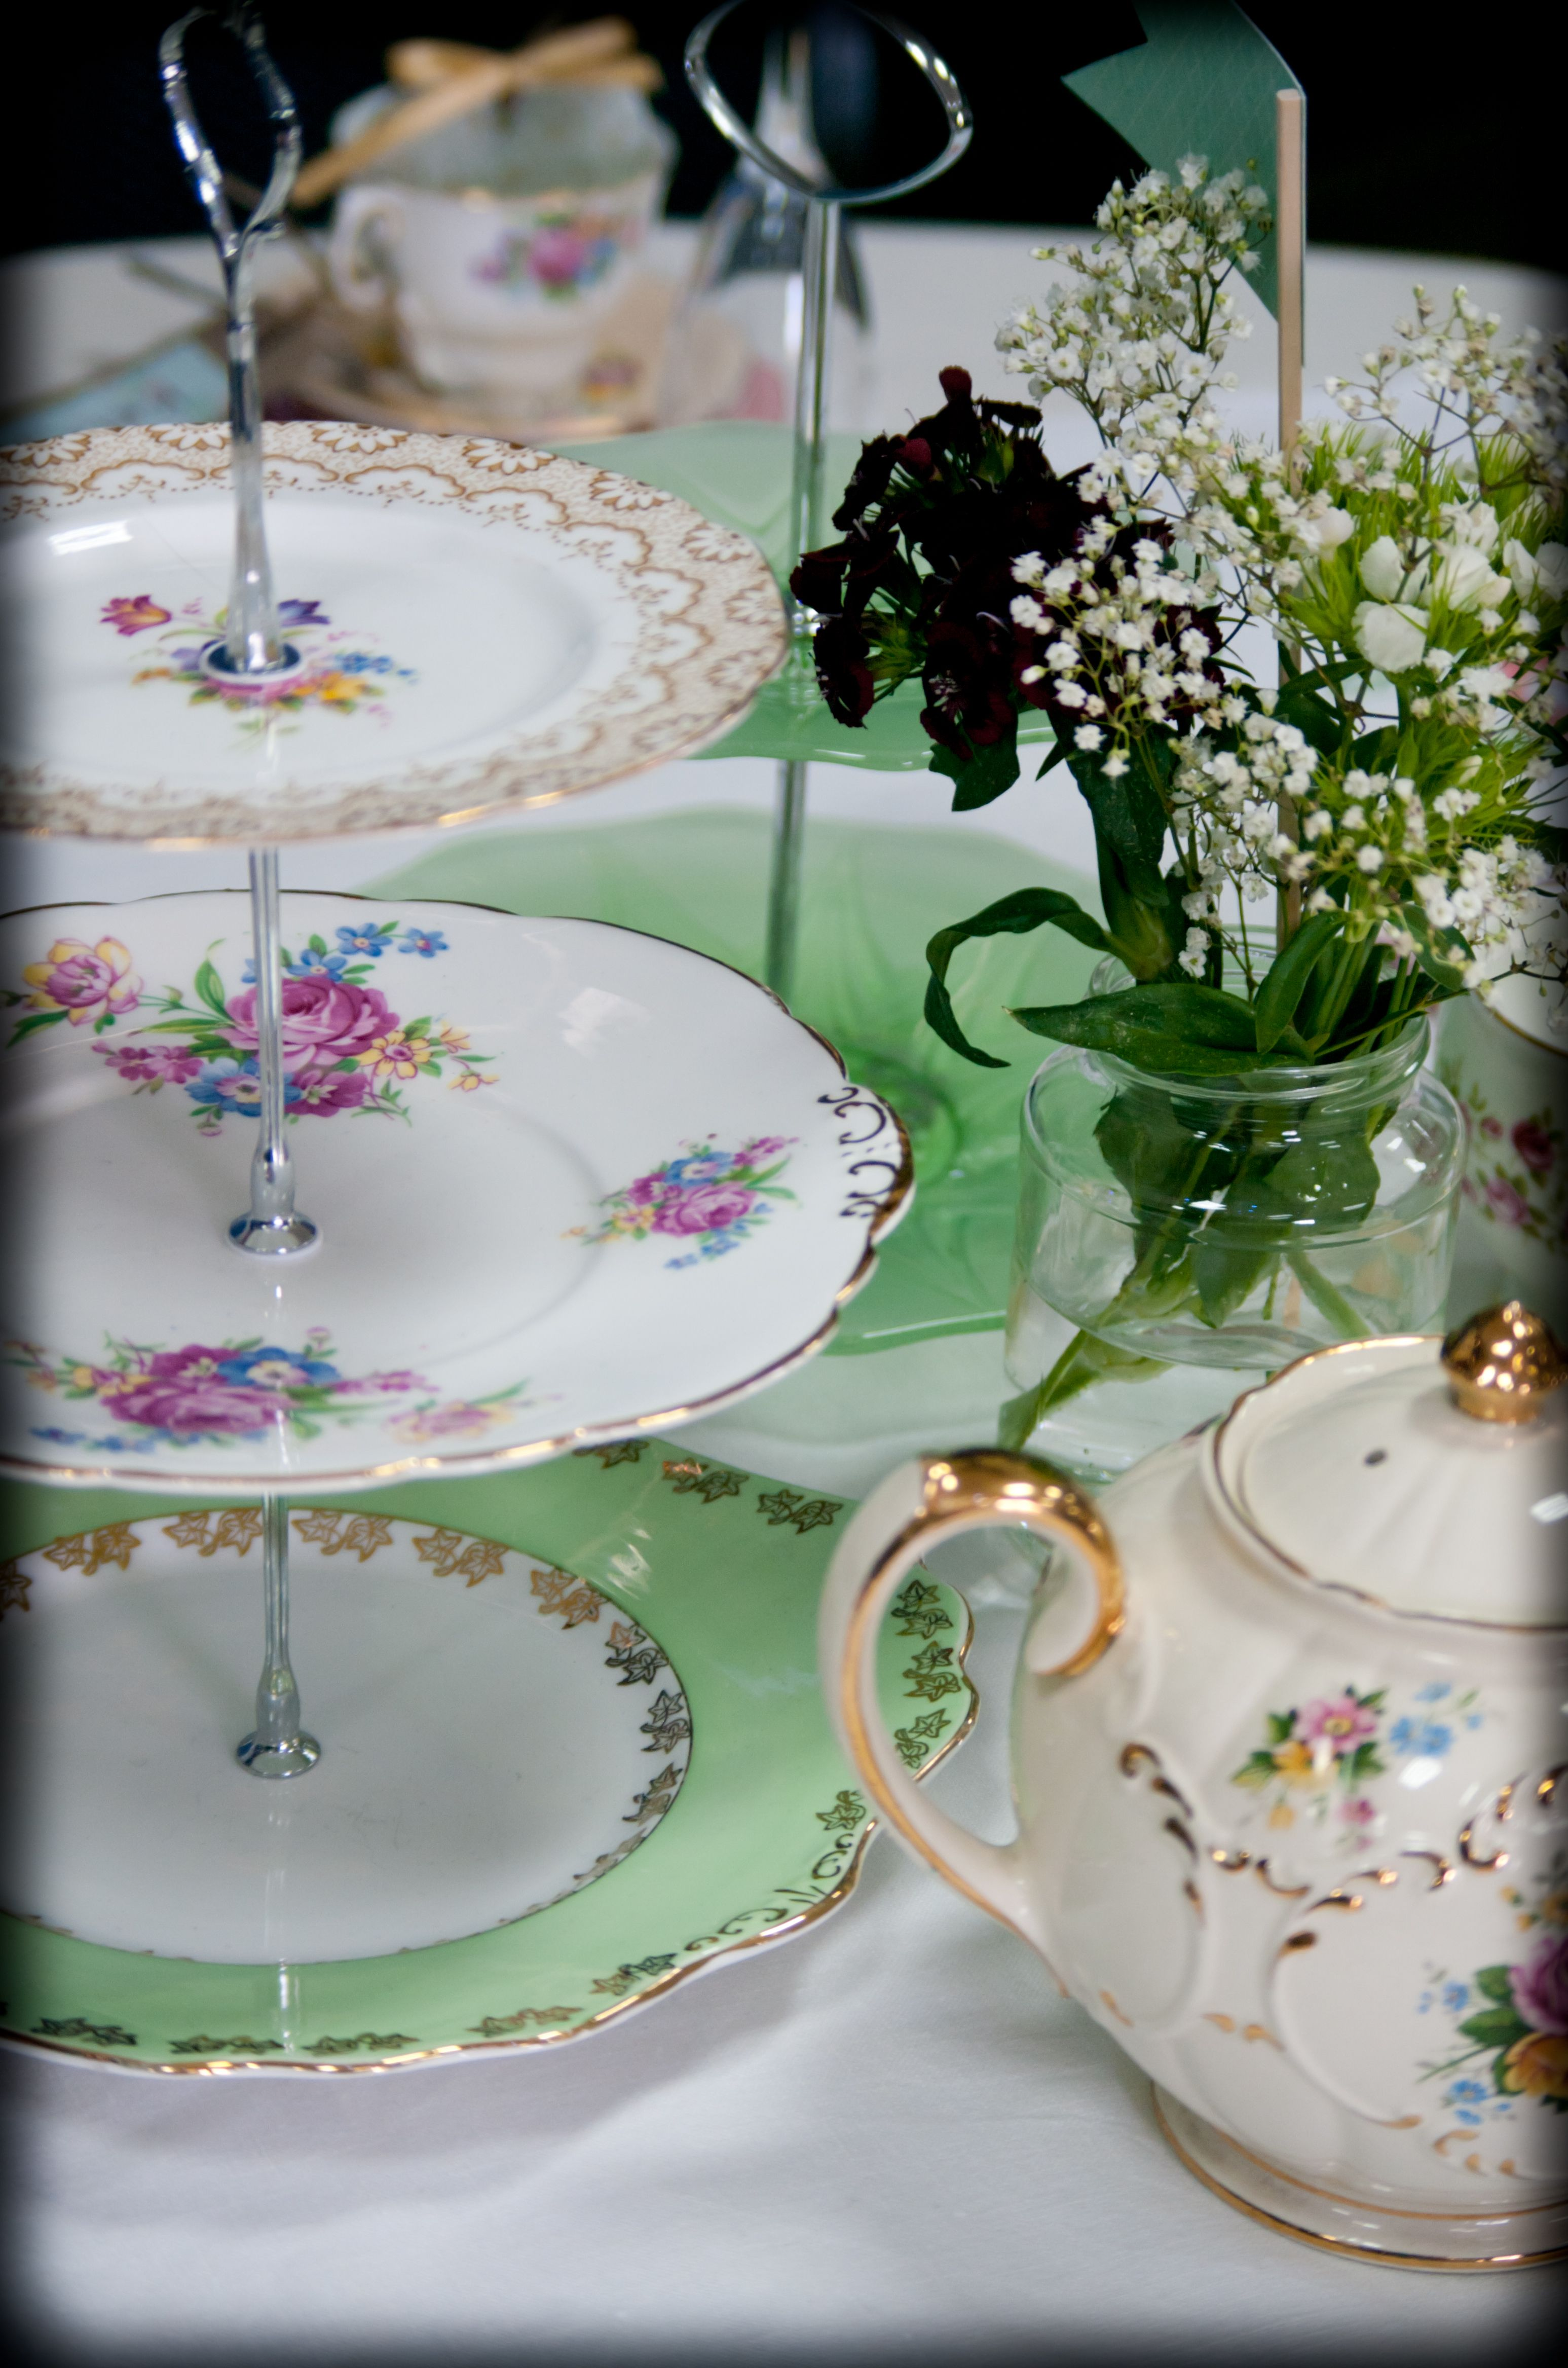 Cake stands available to hire from itsy bitsy vintage